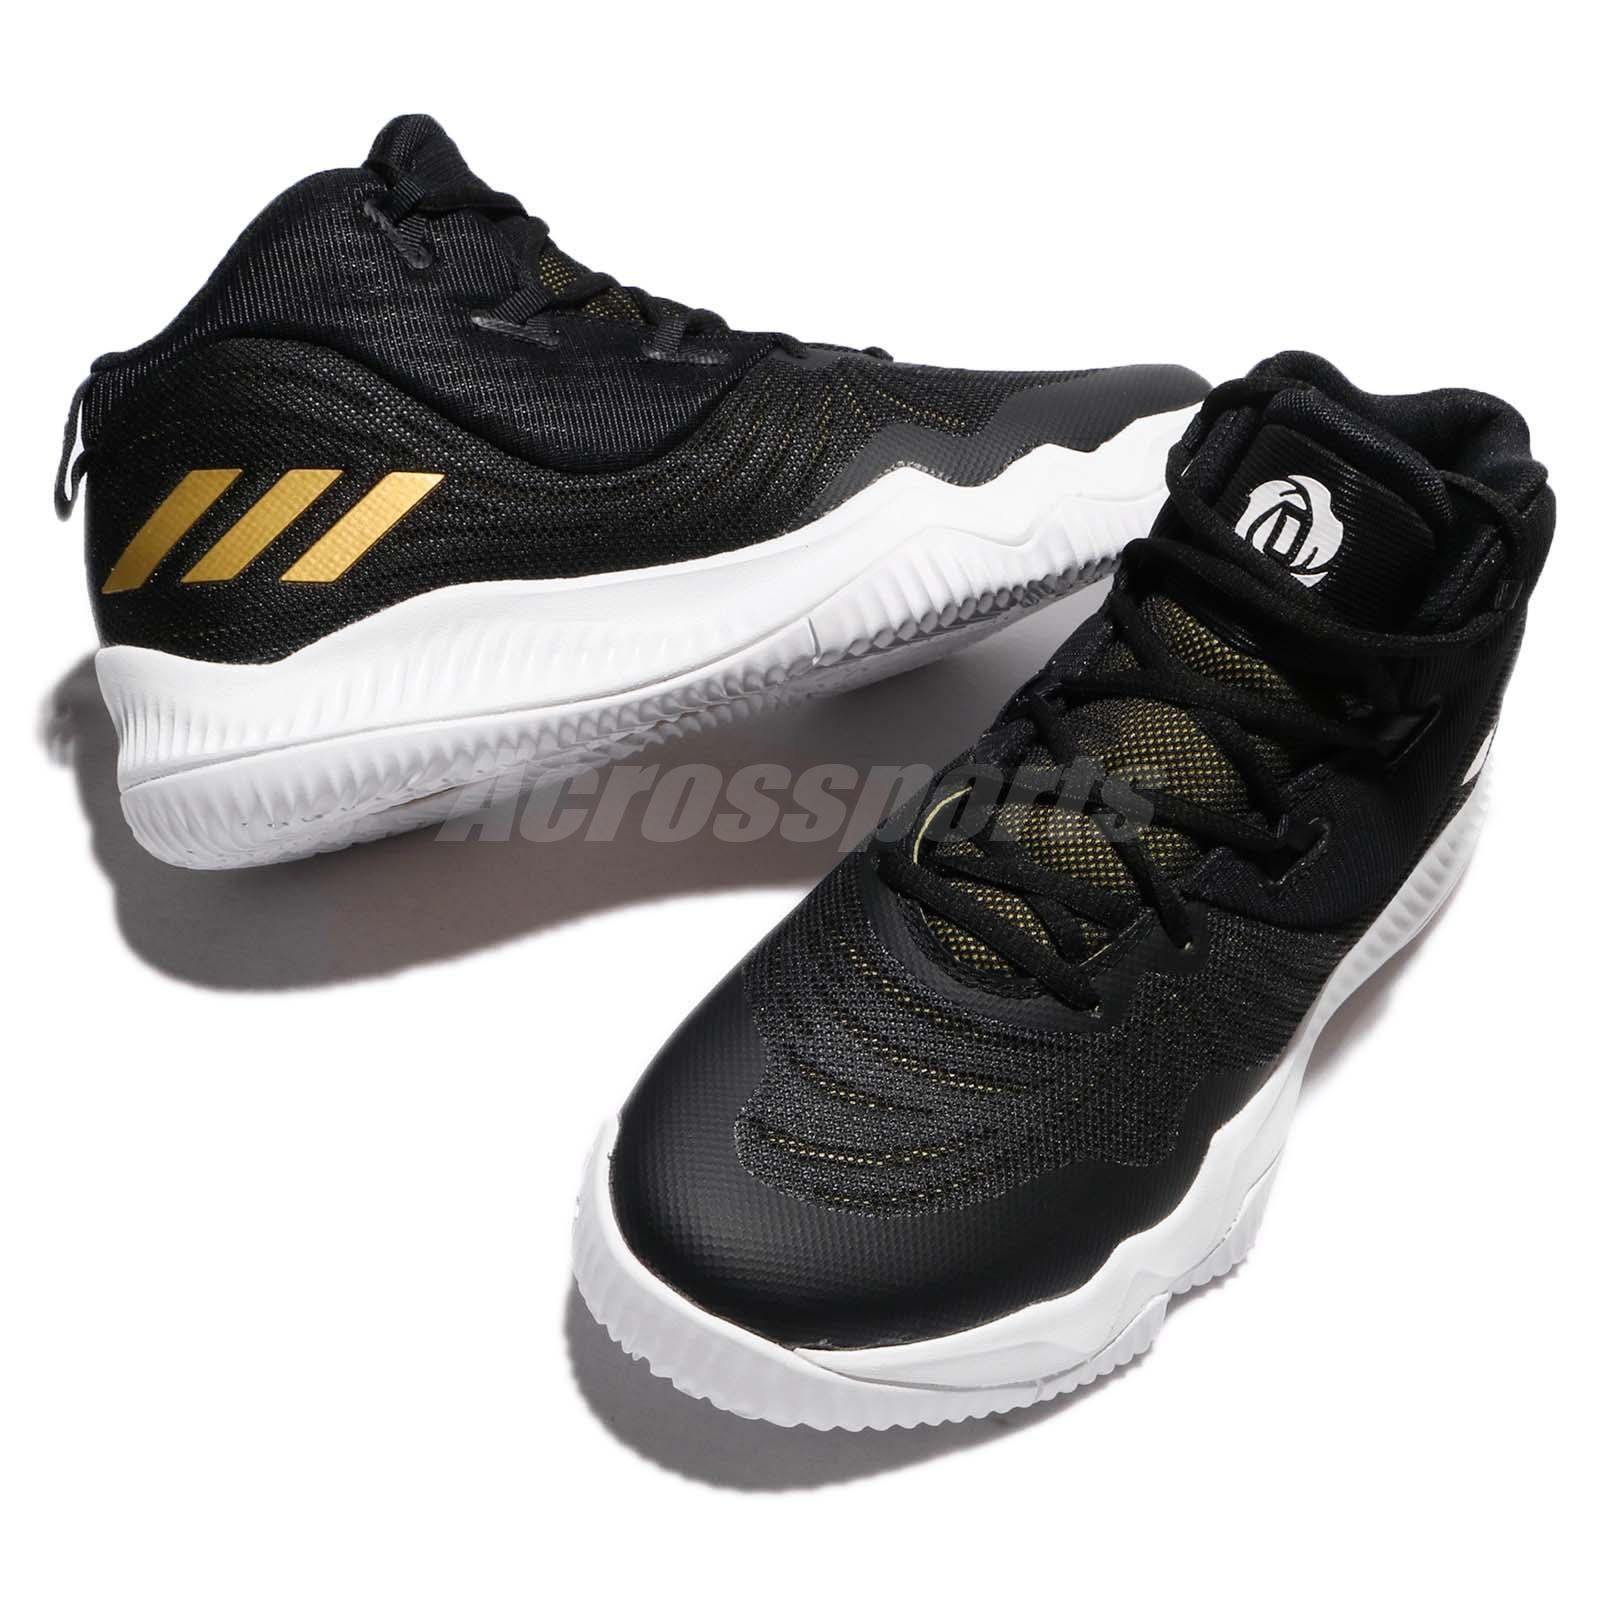 info for abc8f 1fd5d ... adidas D Rose Dominate III 3 Black Gold White Men Basketball newest  397bb 8c30a ...